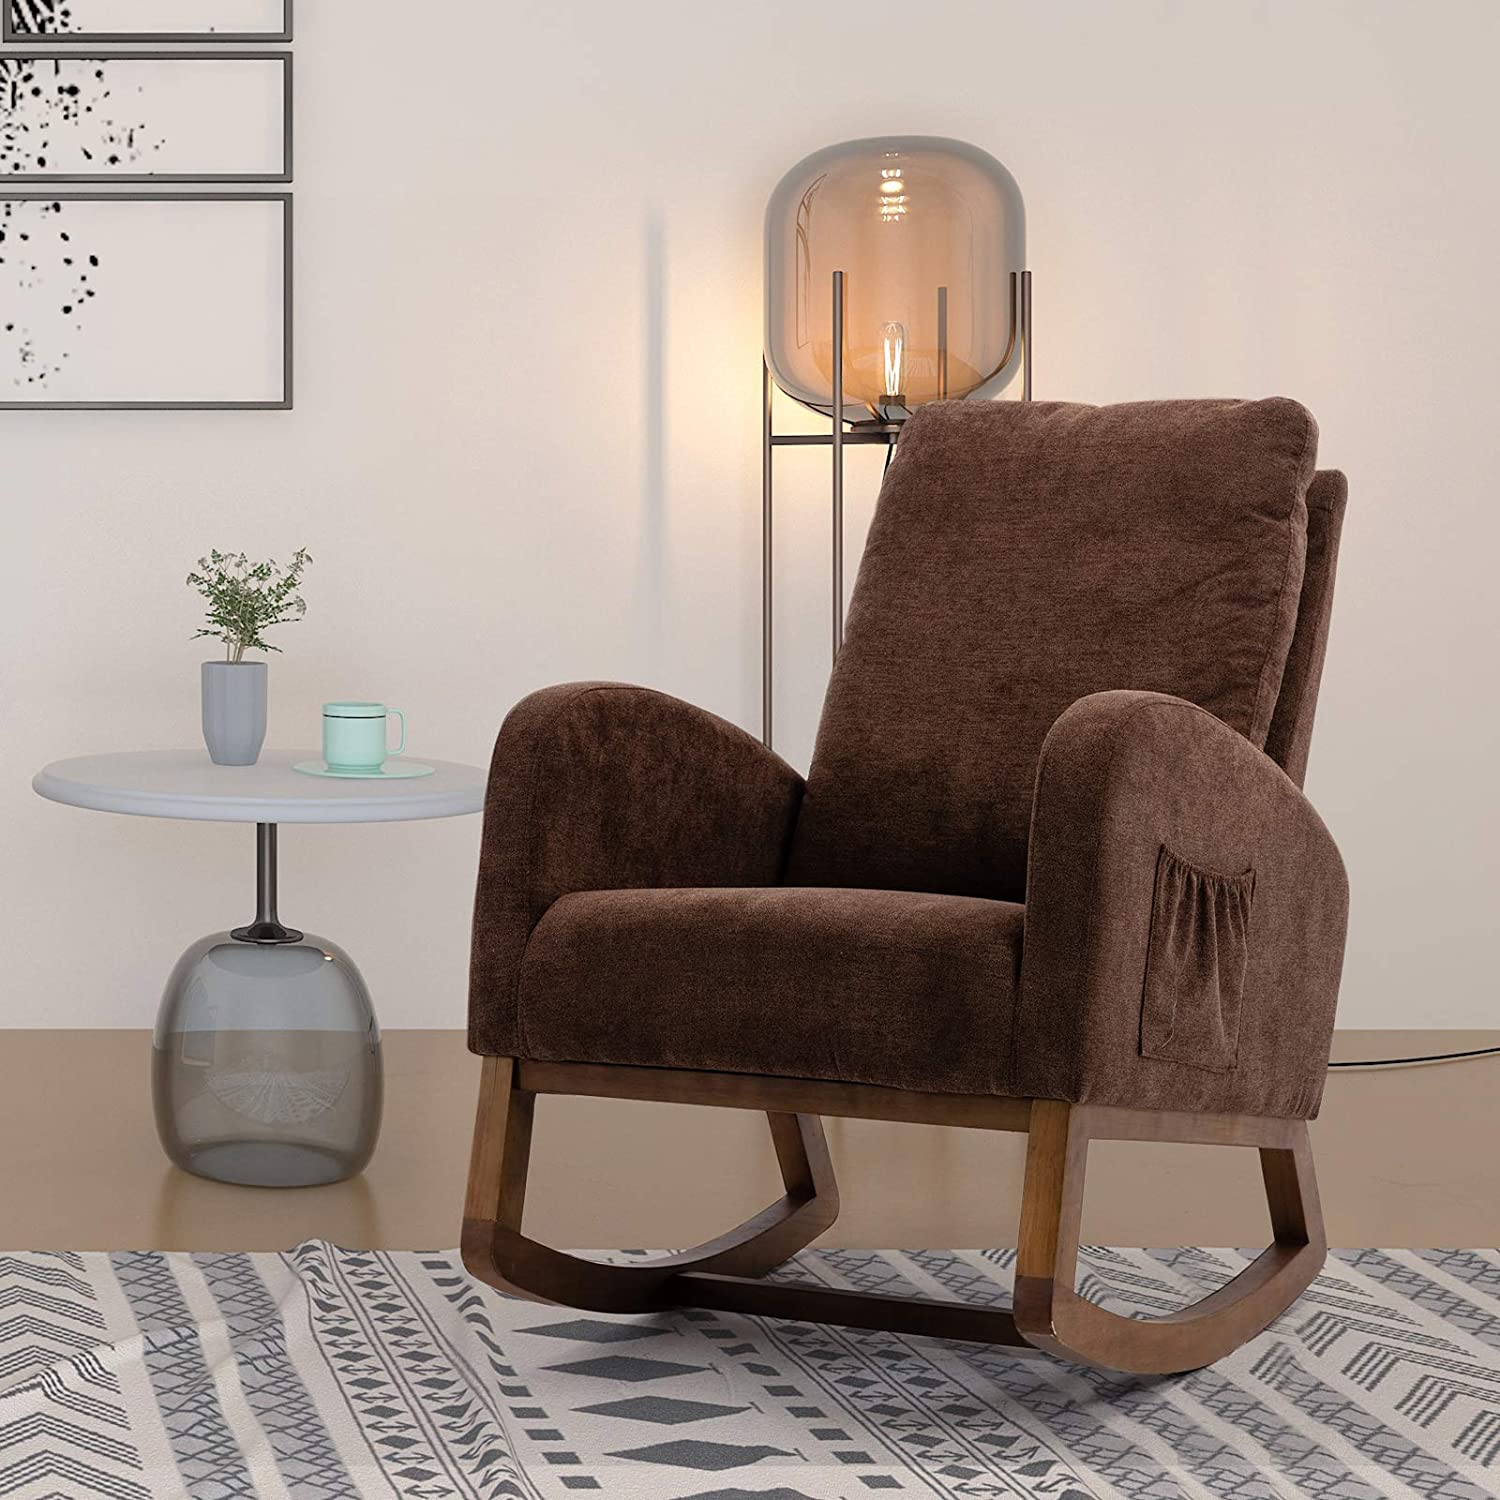 SSLine Upholstered Rocking Chair Comfortable Fabric Rocker Chair with Wooden Frame High-Back Porch Gliding Rocker Lounge Relaxing Armchair w/Side Storage Pocket for Living Room Bedroom Nursery